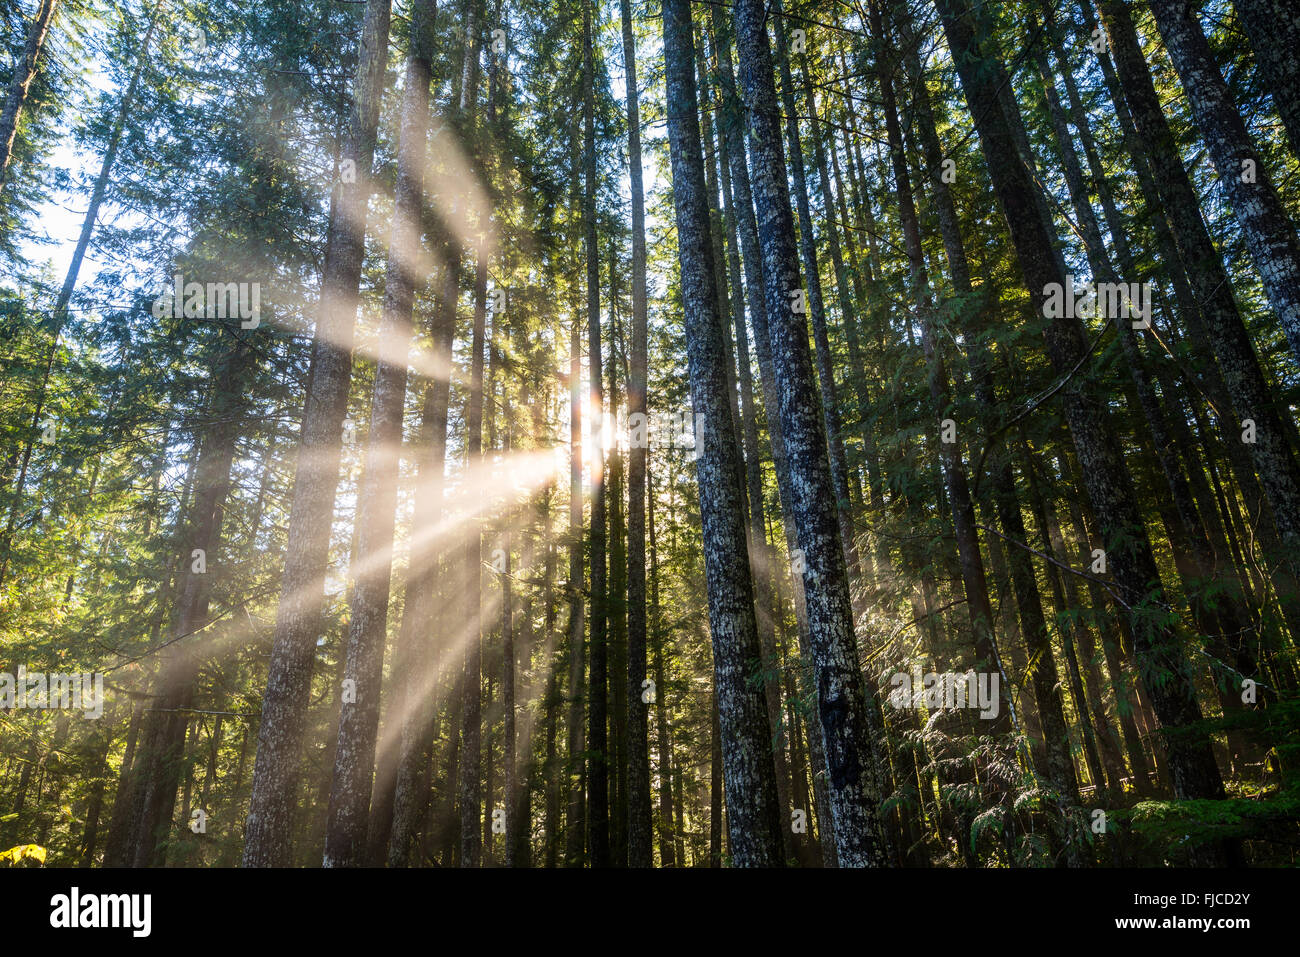 Sun beams through a forest in Washington State. - Stock Image